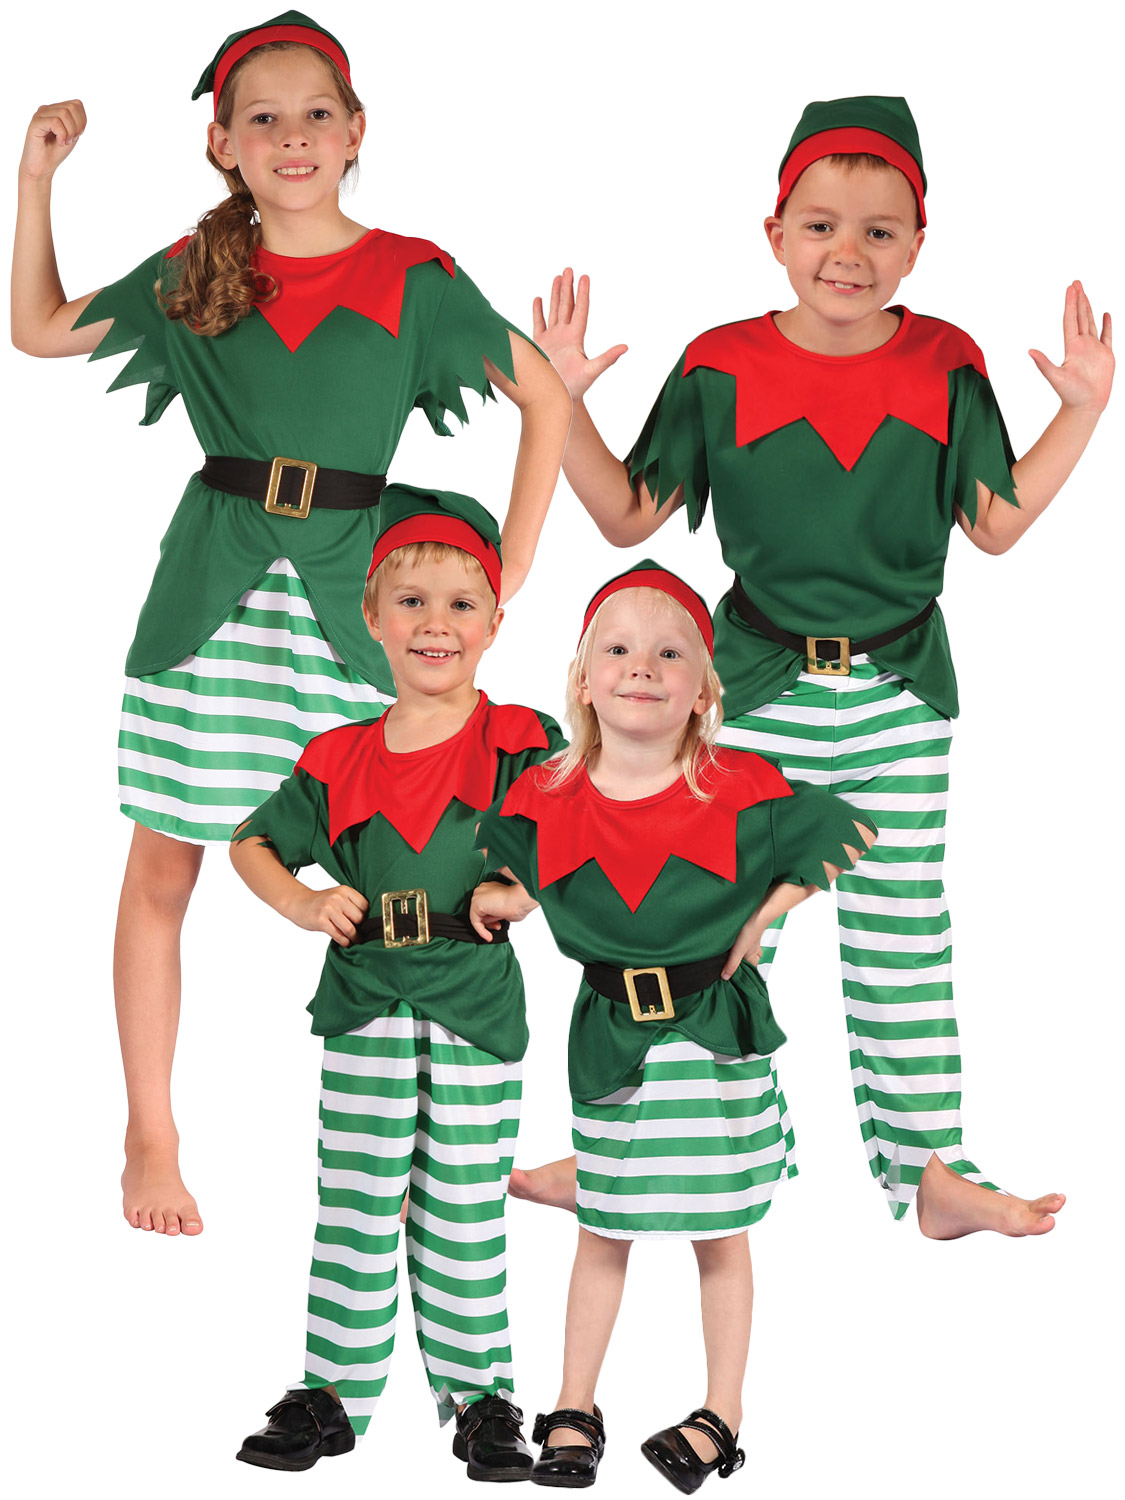 Books Children's Books Textbooks eBooks & Audiobooks Walmart Reading. Skip to next department. Shop All Home. Unisex Playful 5-Piece Christmas Elf Costume Set - Adult Size. Reduced Price. Product Image. Price (products not sold by teraisompcz8d.ga).